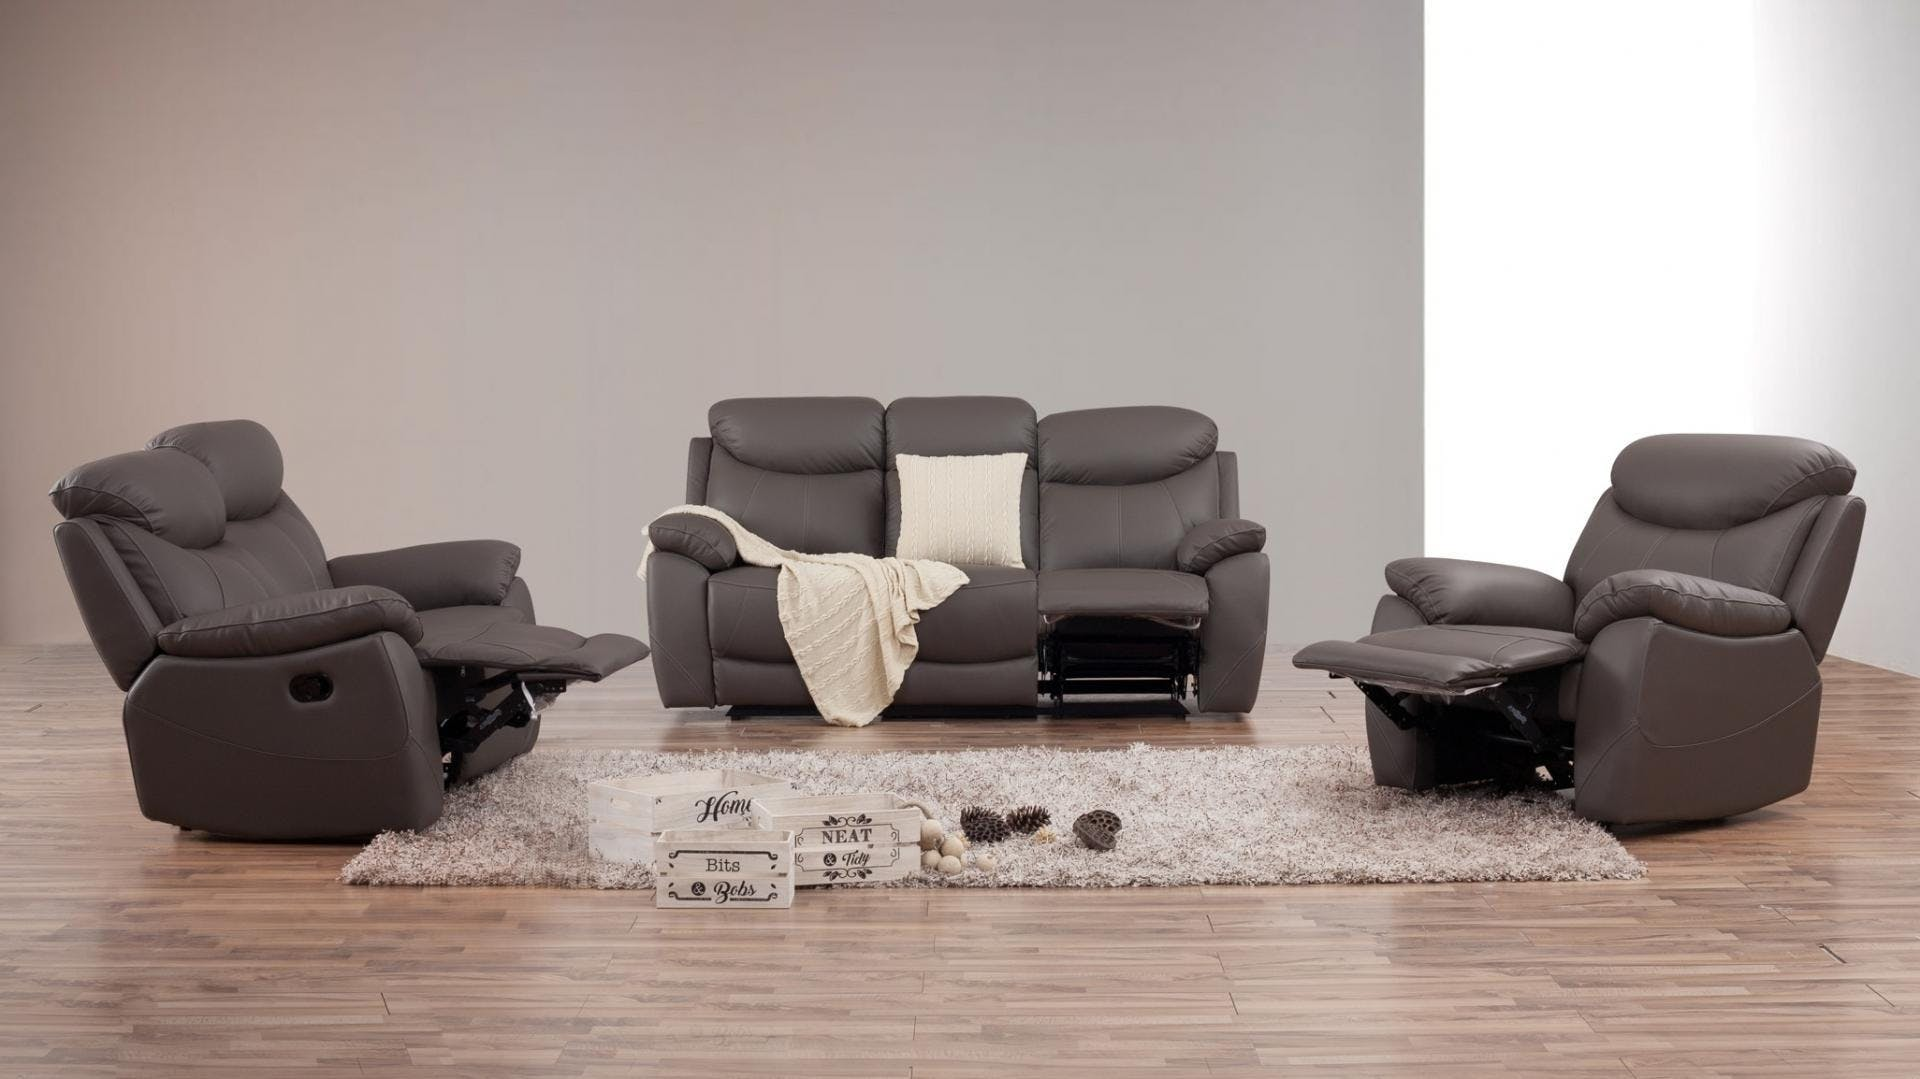 Pleasant Brighton Leather Recliner Sofa Suite 3 2 1 Lounge Life Gmtry Best Dining Table And Chair Ideas Images Gmtryco